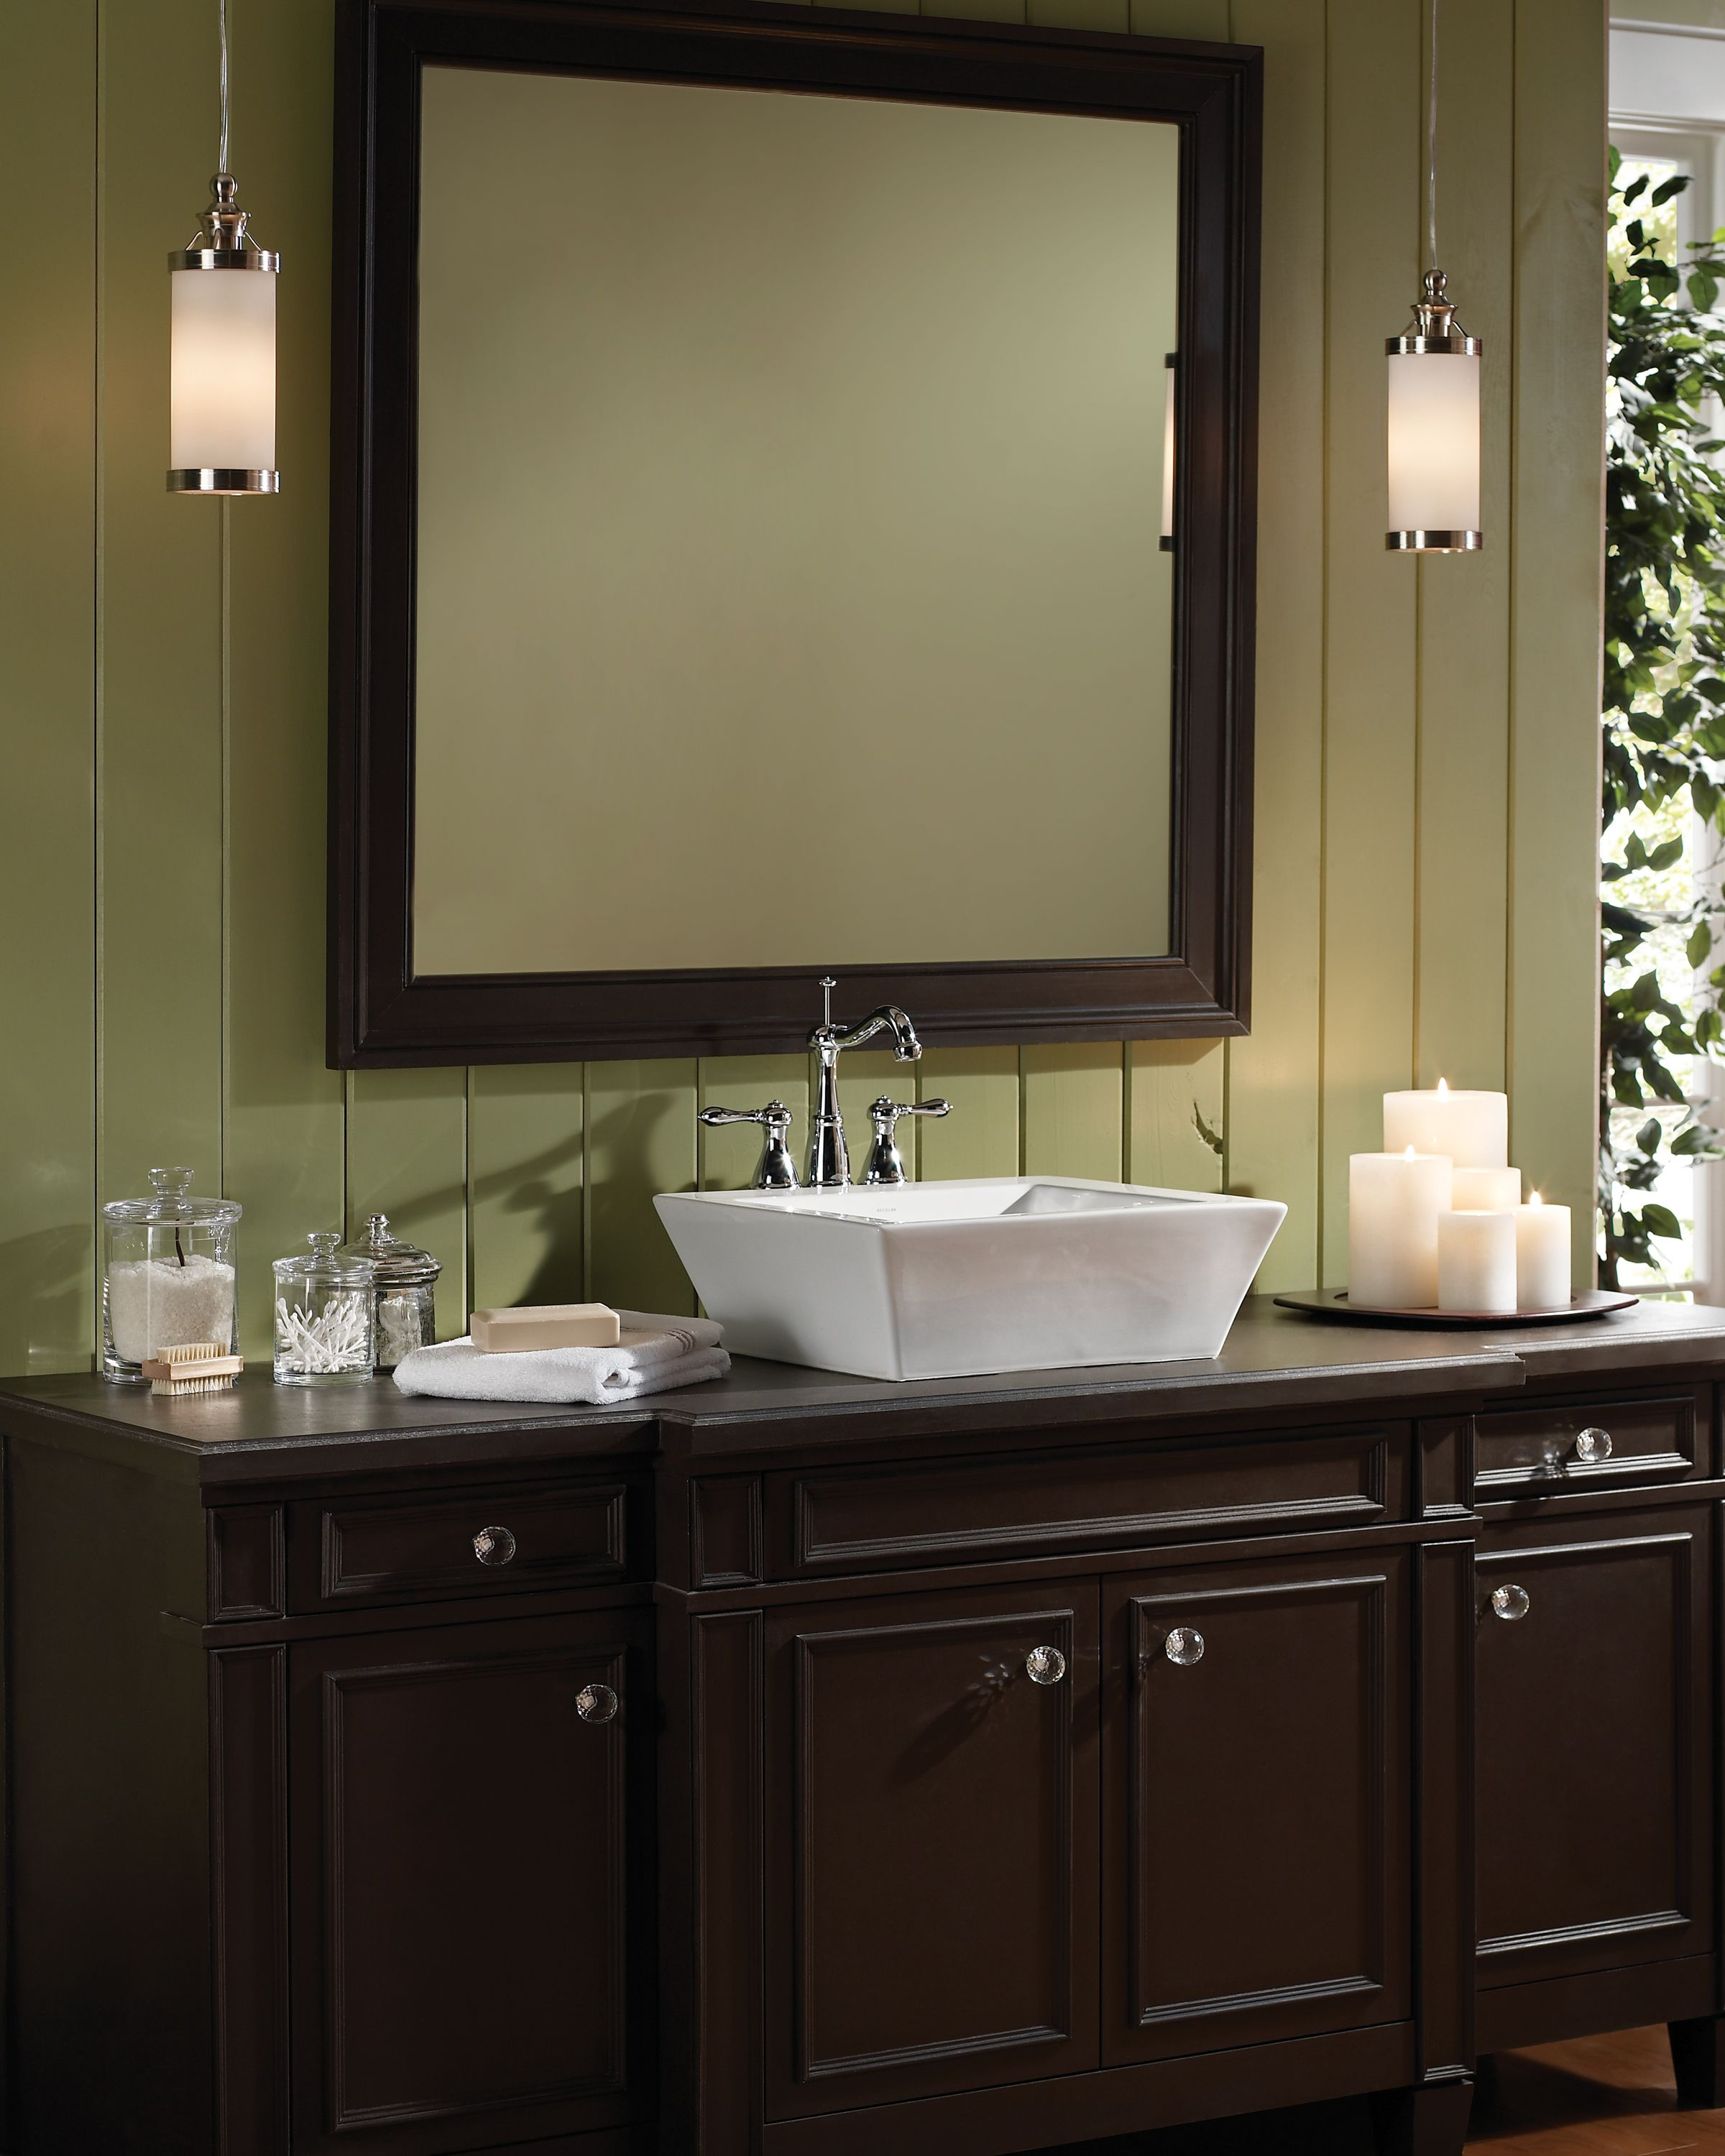 Bridgeport Pendant By Tech Lighting In Bathroom Bathroomlighting Bathroom Pinterest